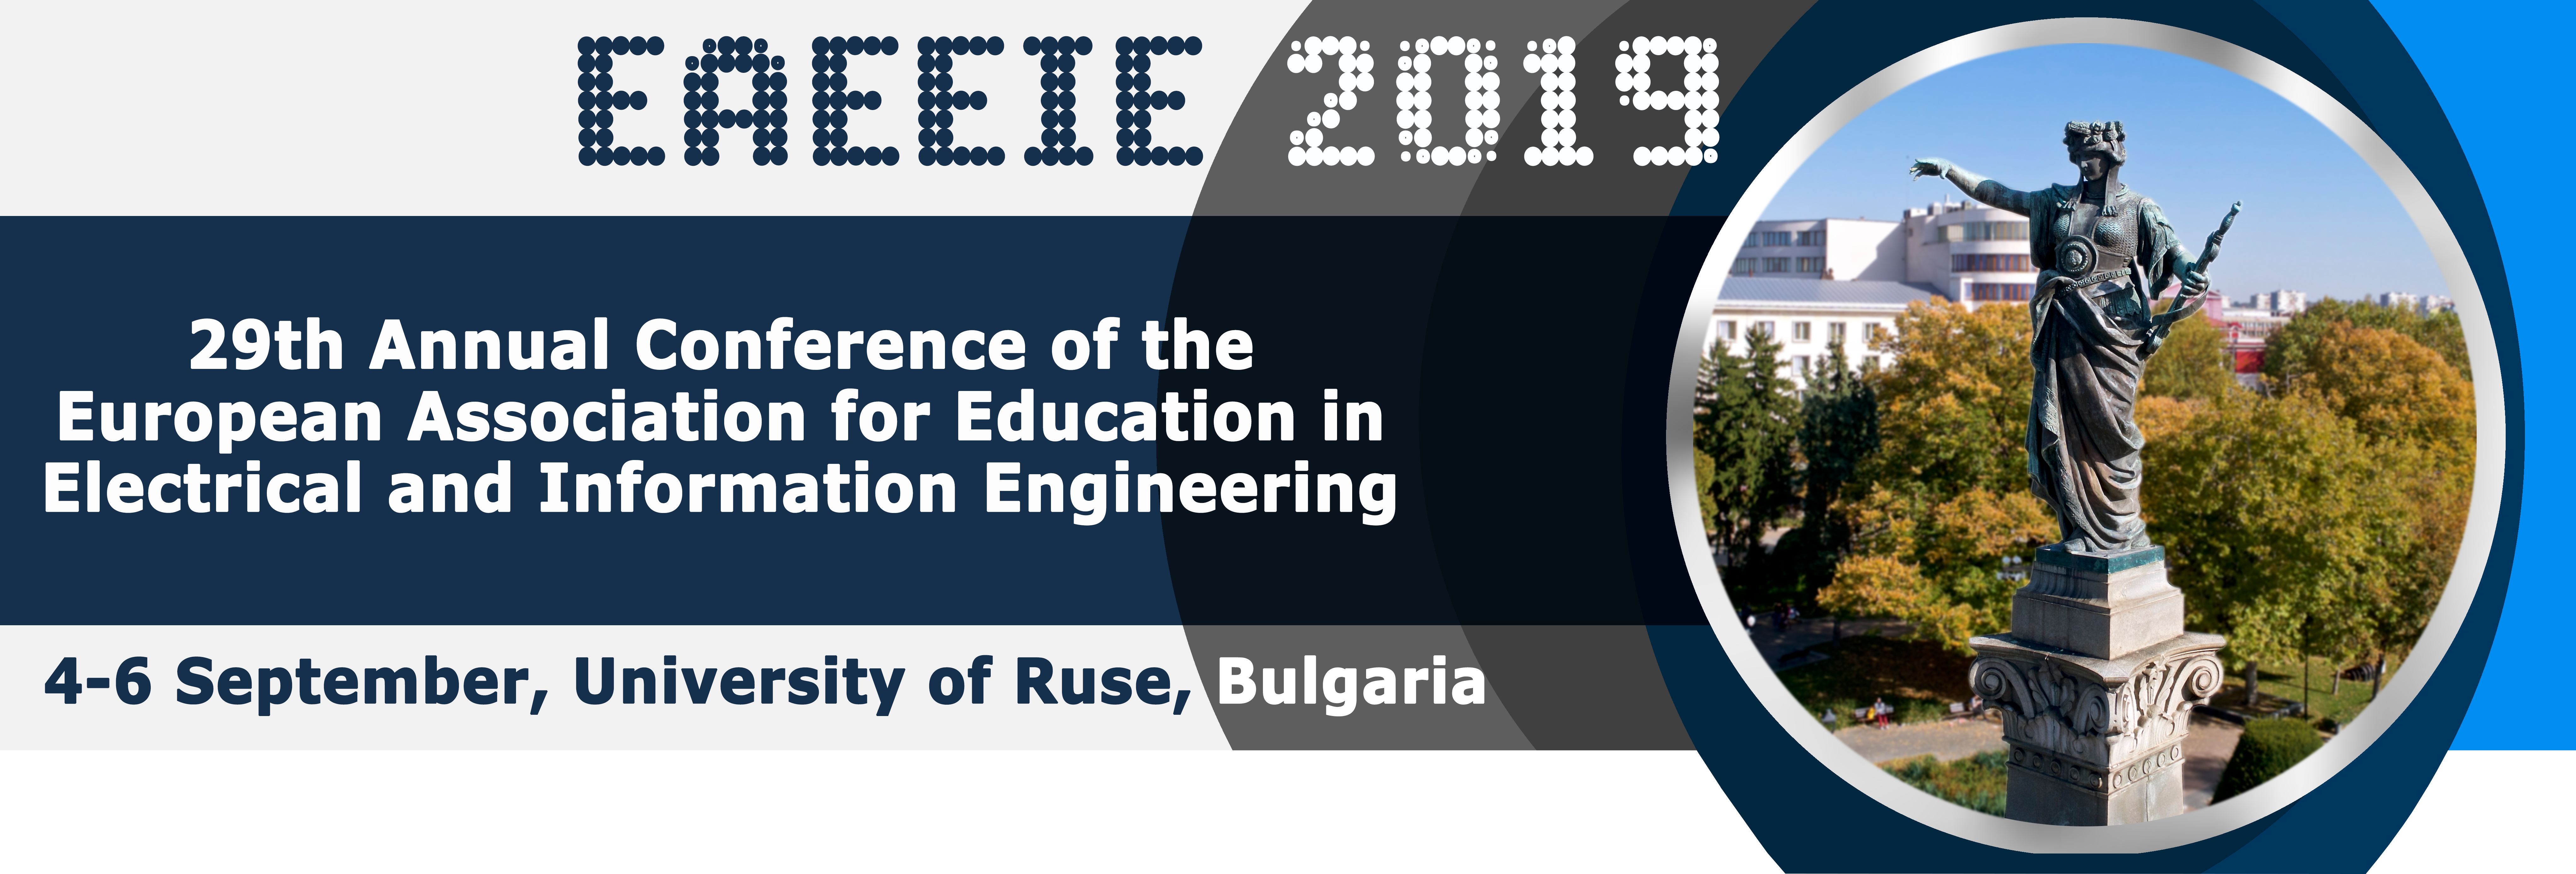 EAEEIE 2019 Annual Conference